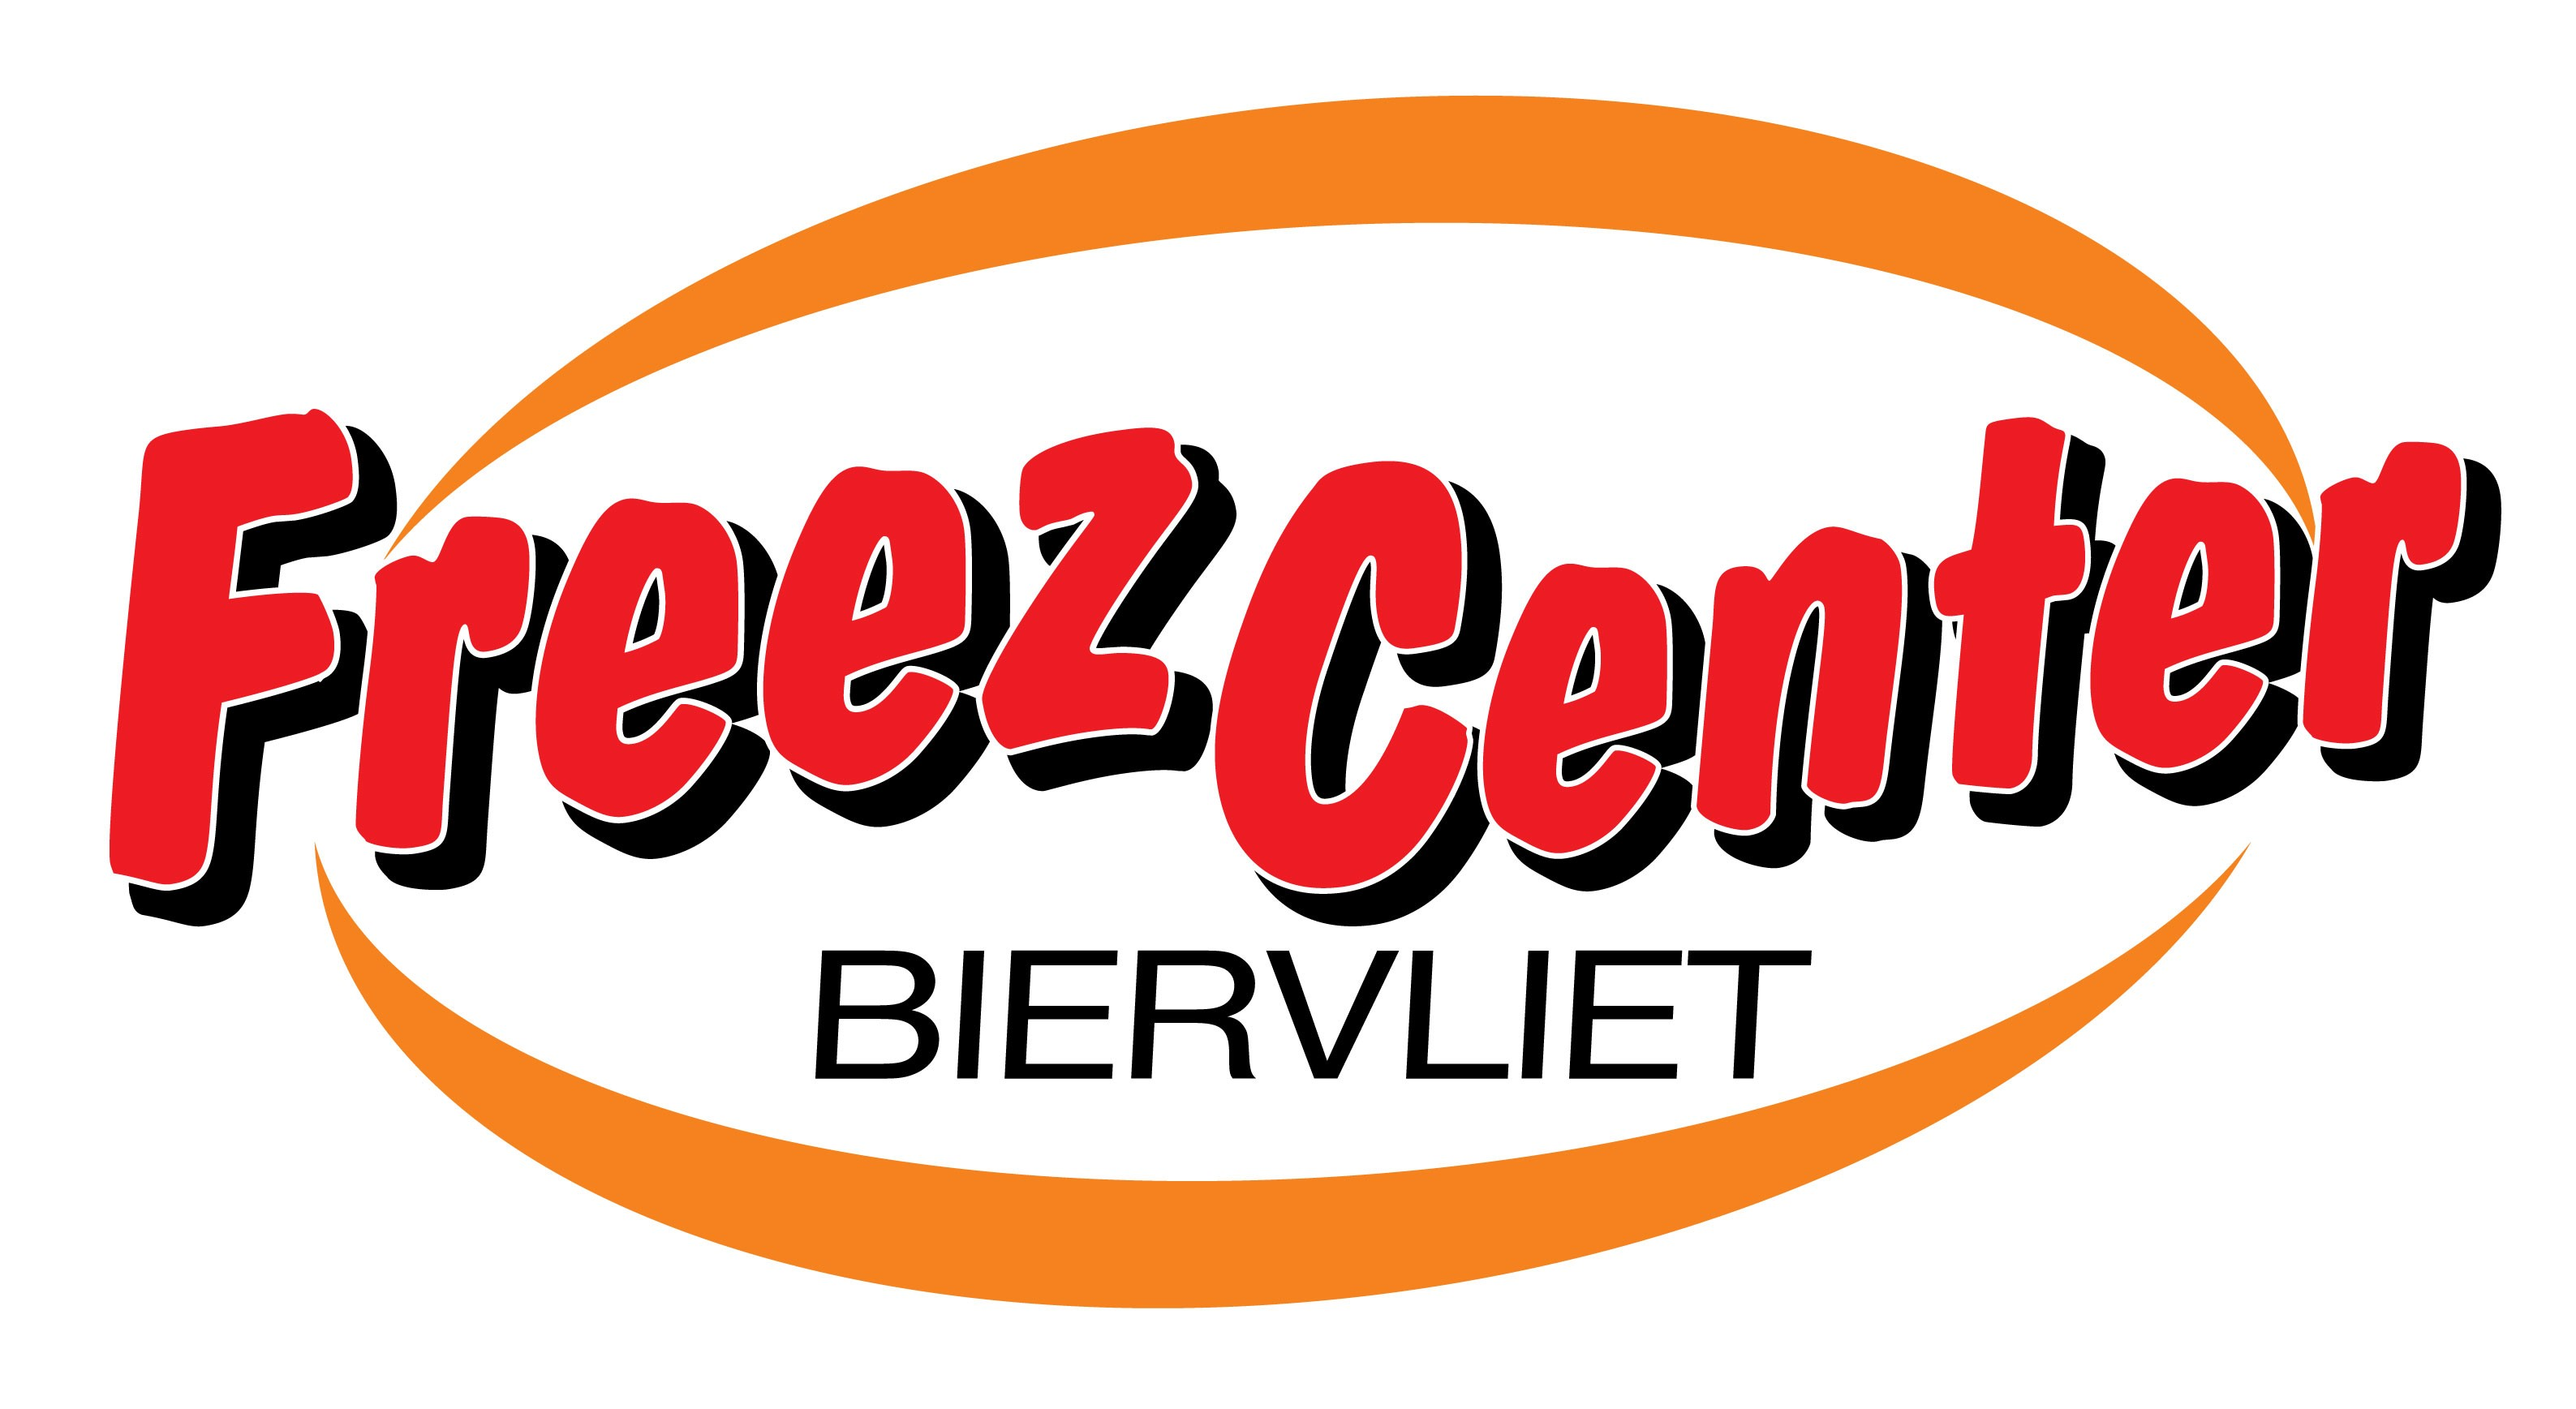 Biervliet_Freez_Center.jpg